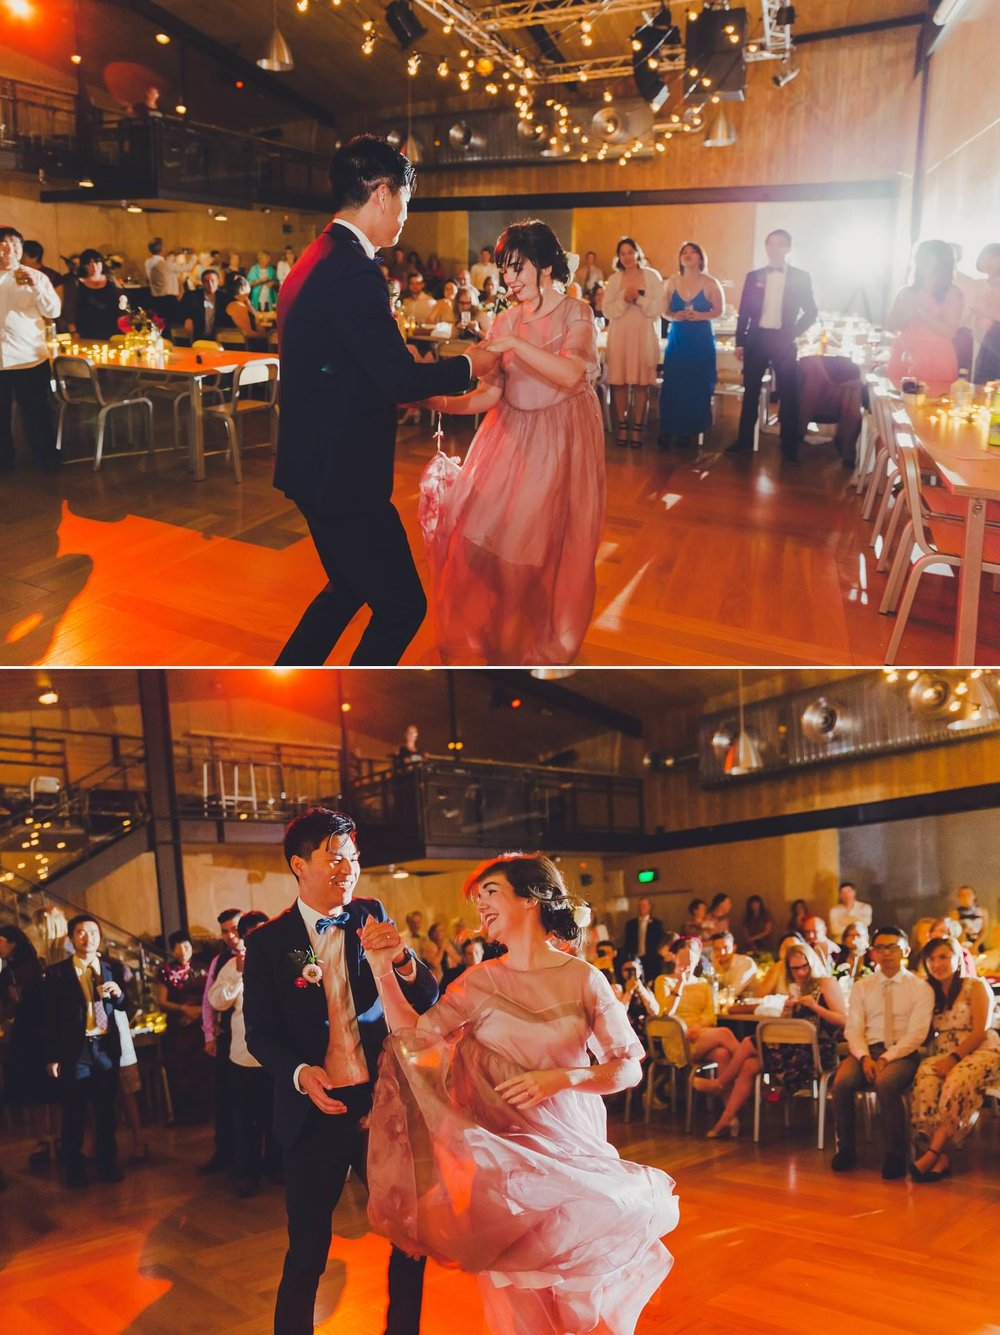 Hipster wedding photos; Bride and groom fun first dance